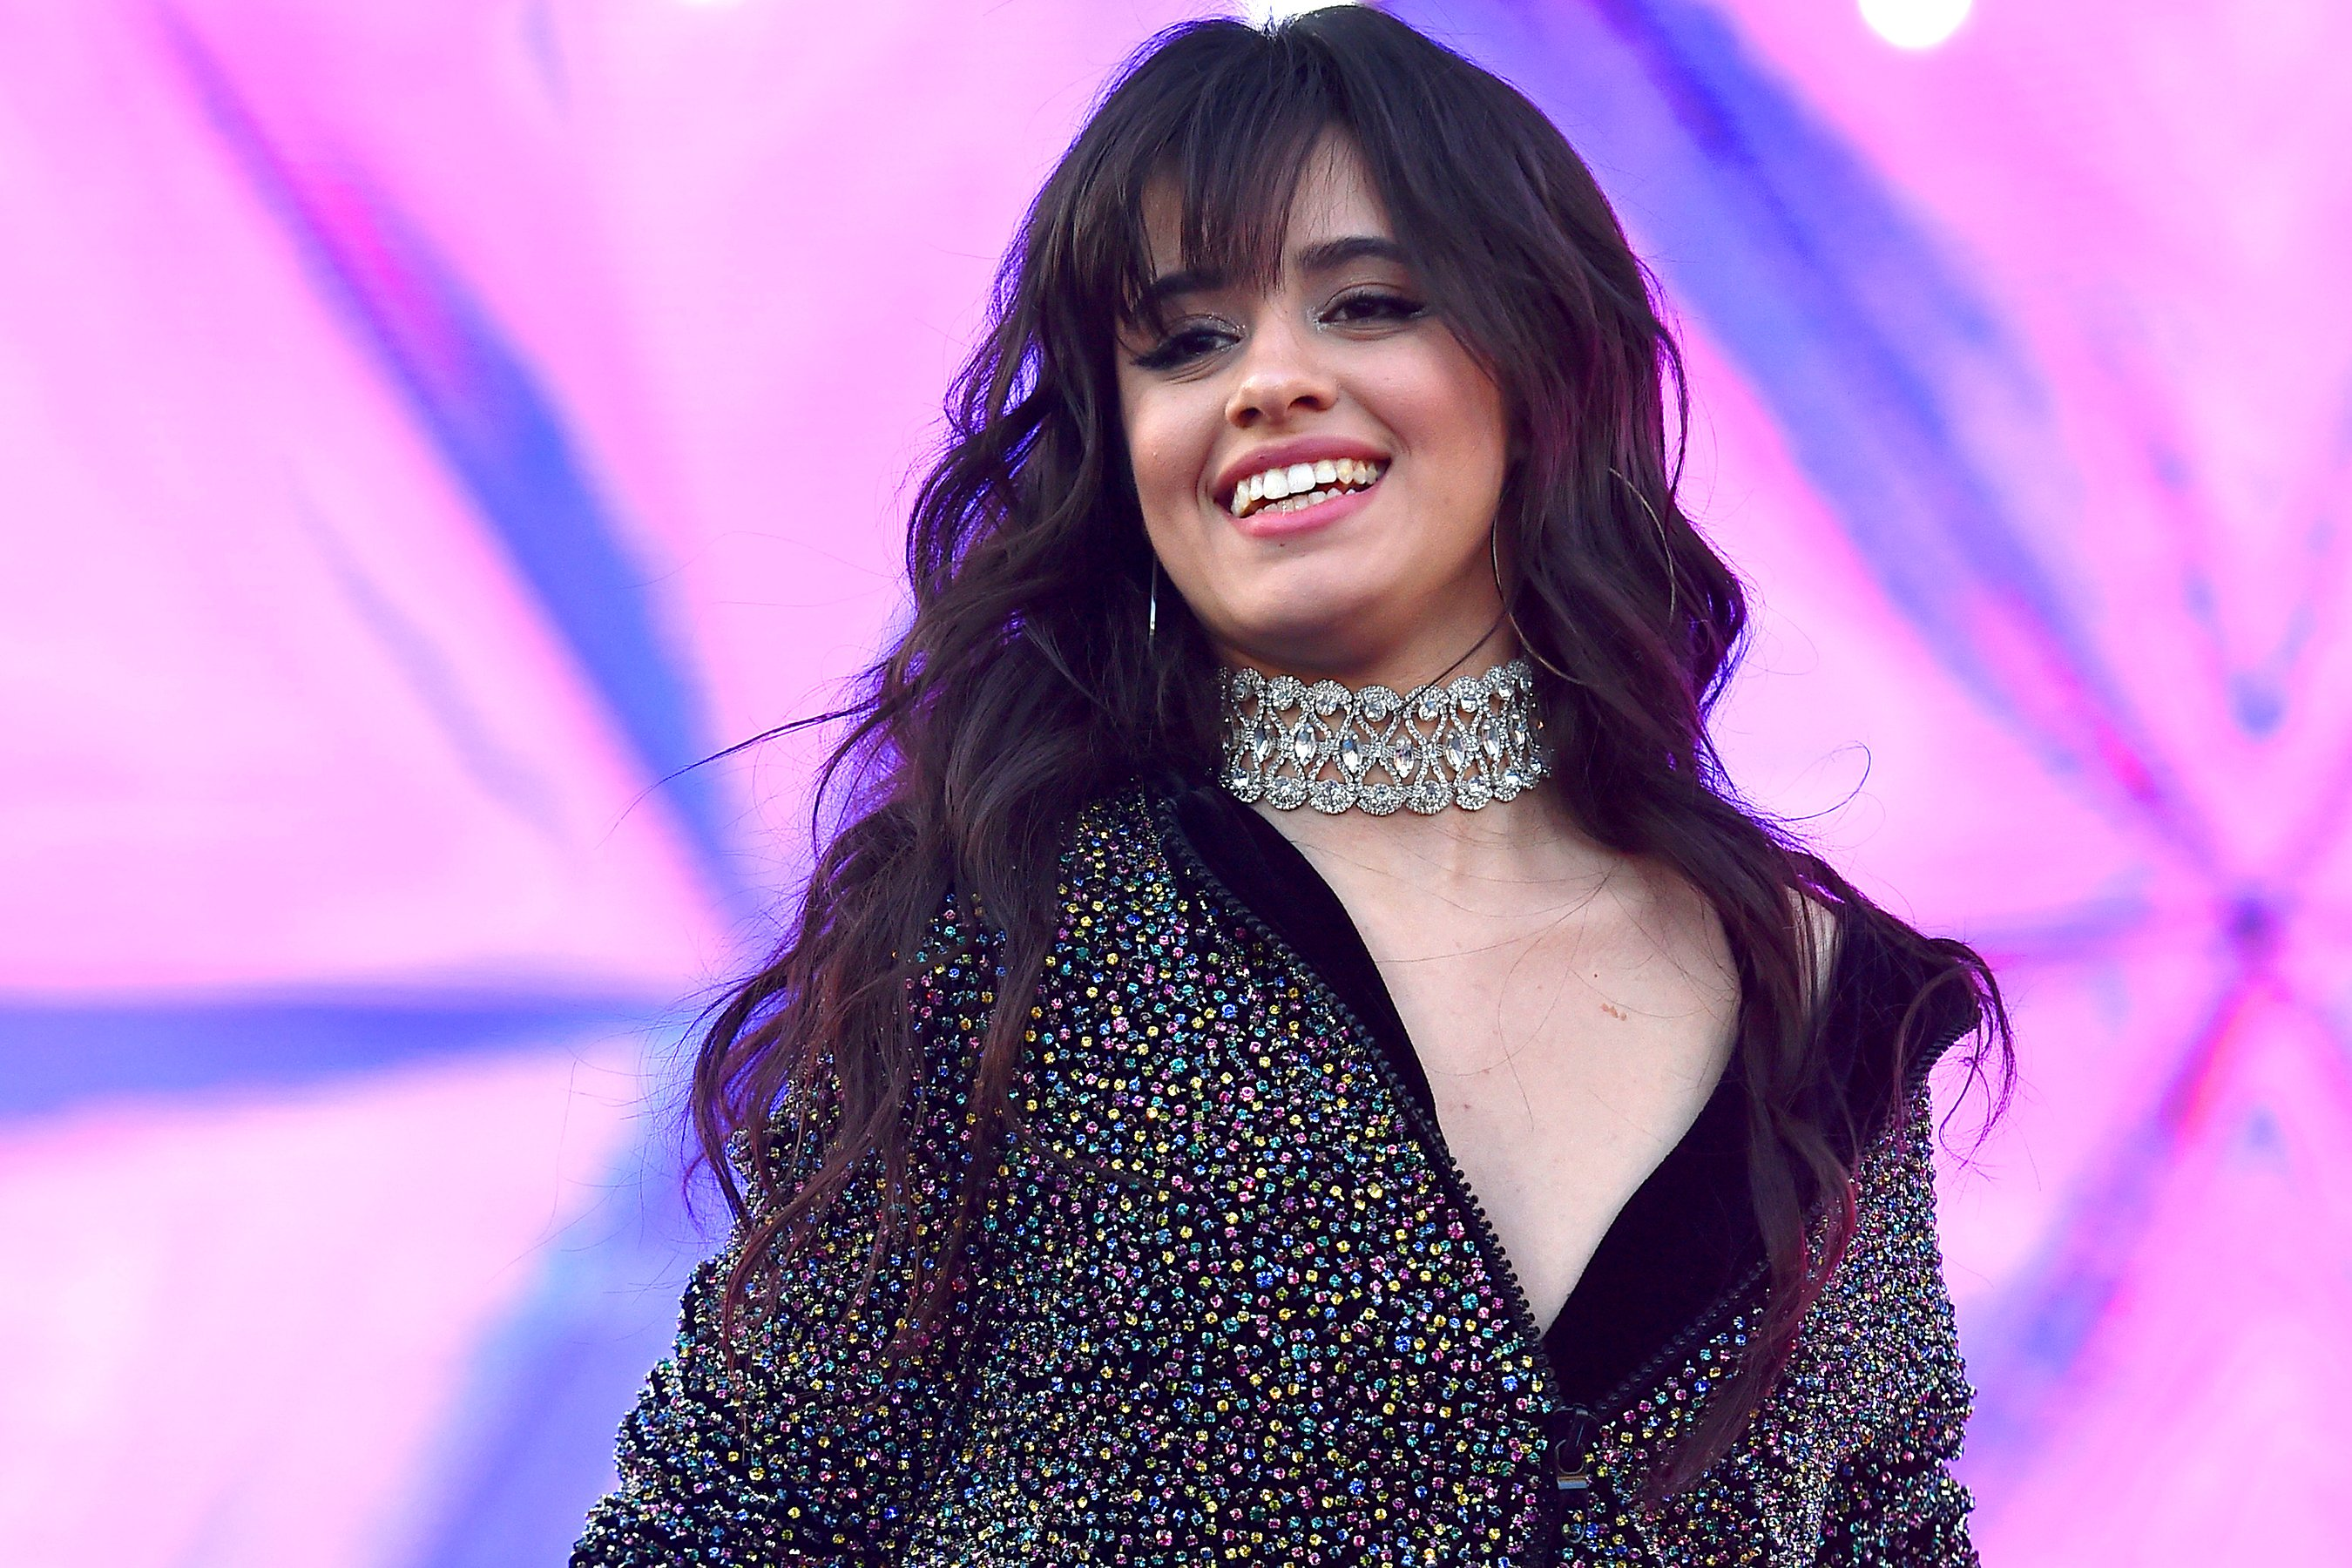 Camila Cabello announces 'Never Be The Same' tour dates